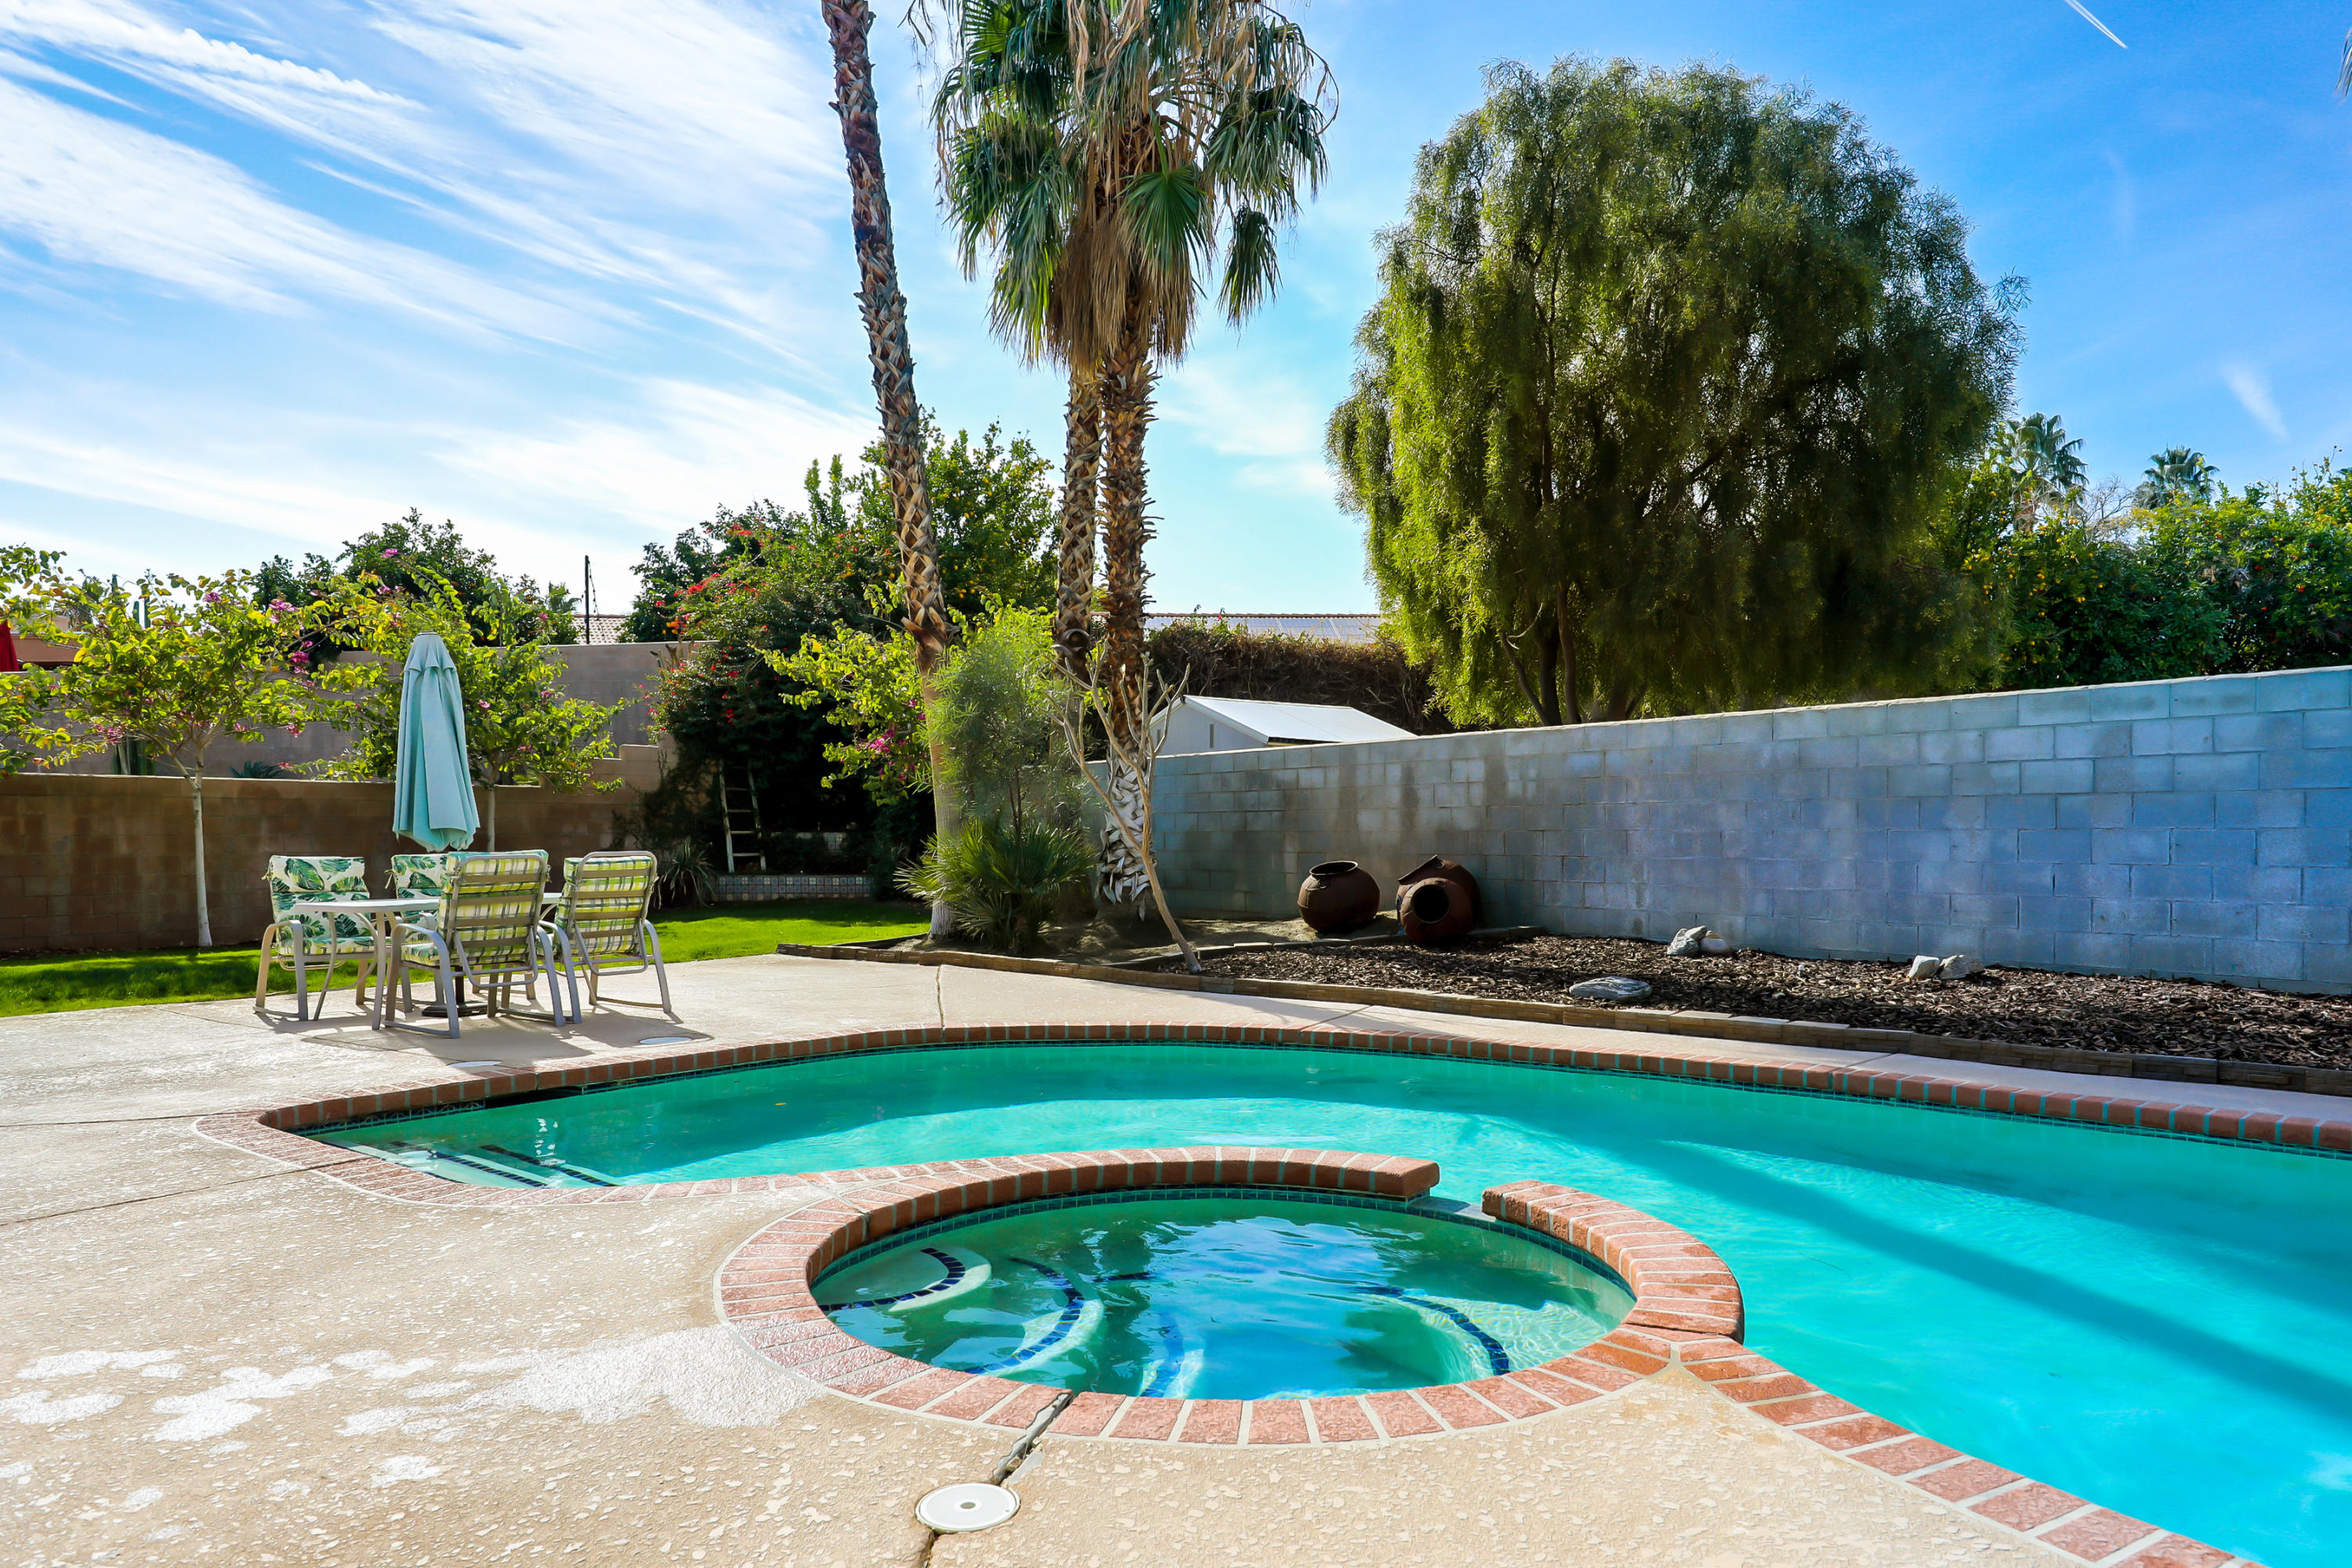 68585 Panorama Road, Cathedral City, California 92234, 6 Bedrooms Bedrooms, ,3 BathroomsBathrooms,Residential,For Sale,68585 Panorama Road,219037667